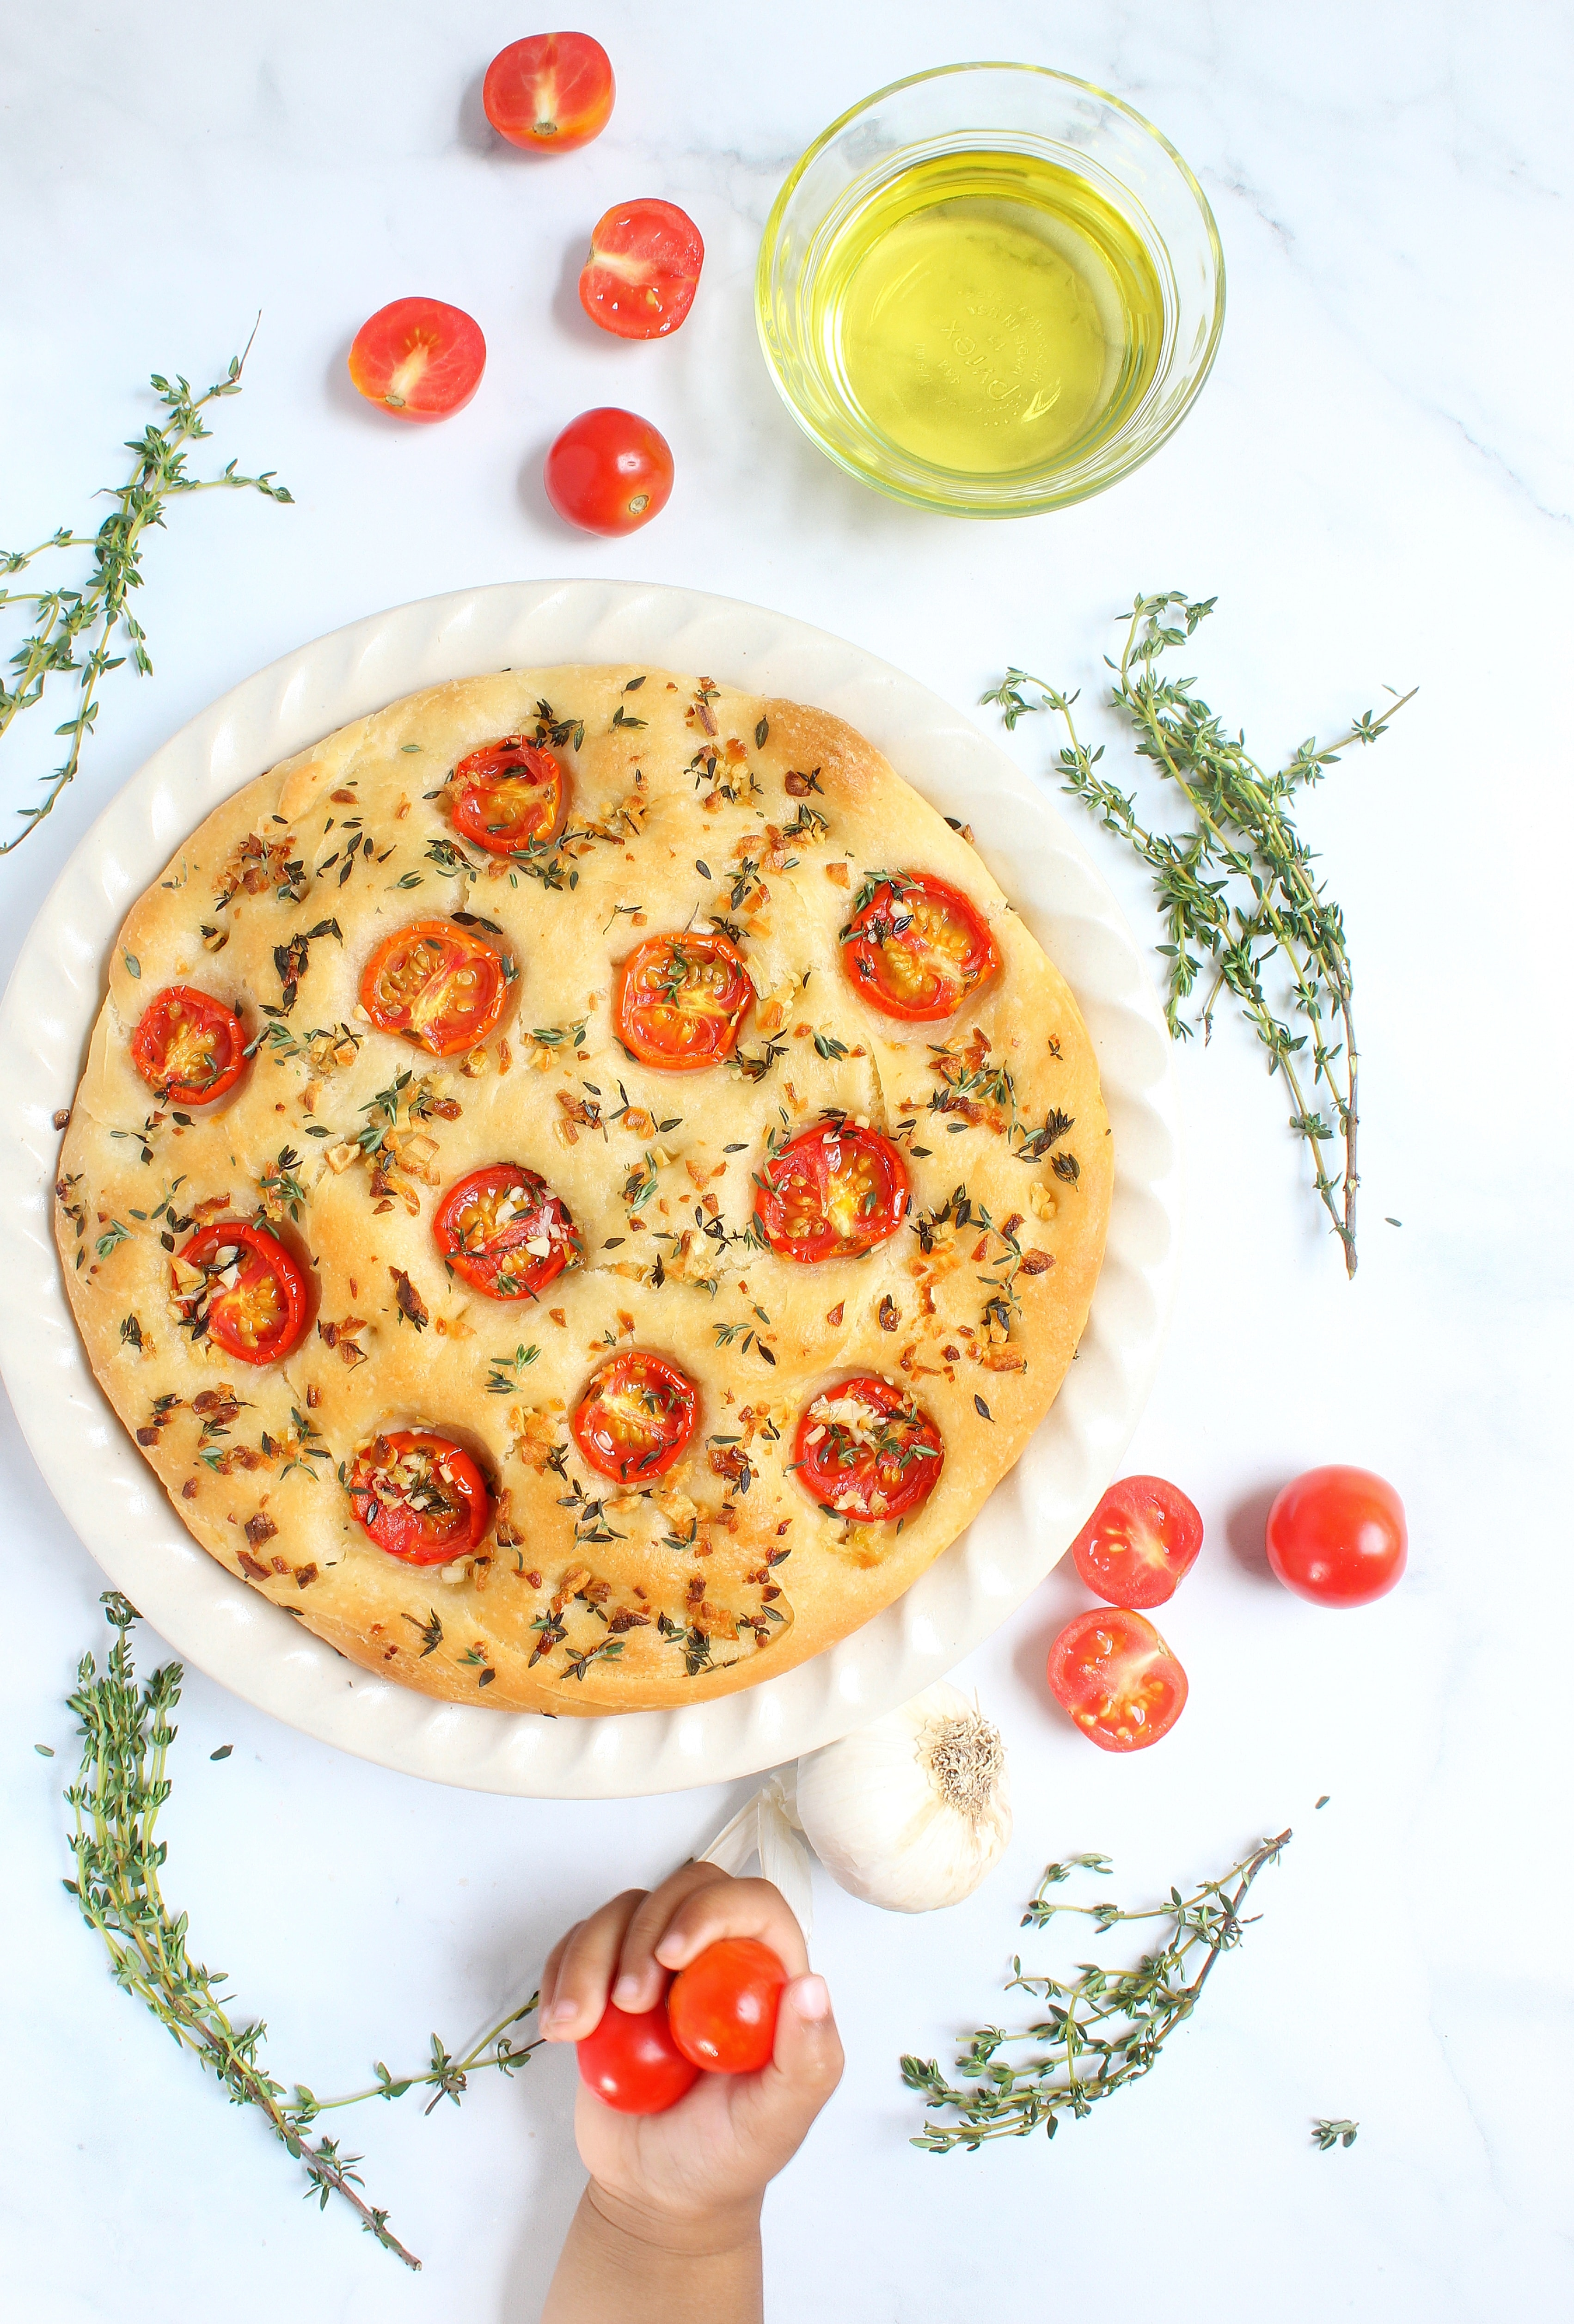 Garlic, Thyme and Tomato Focaccia Bread